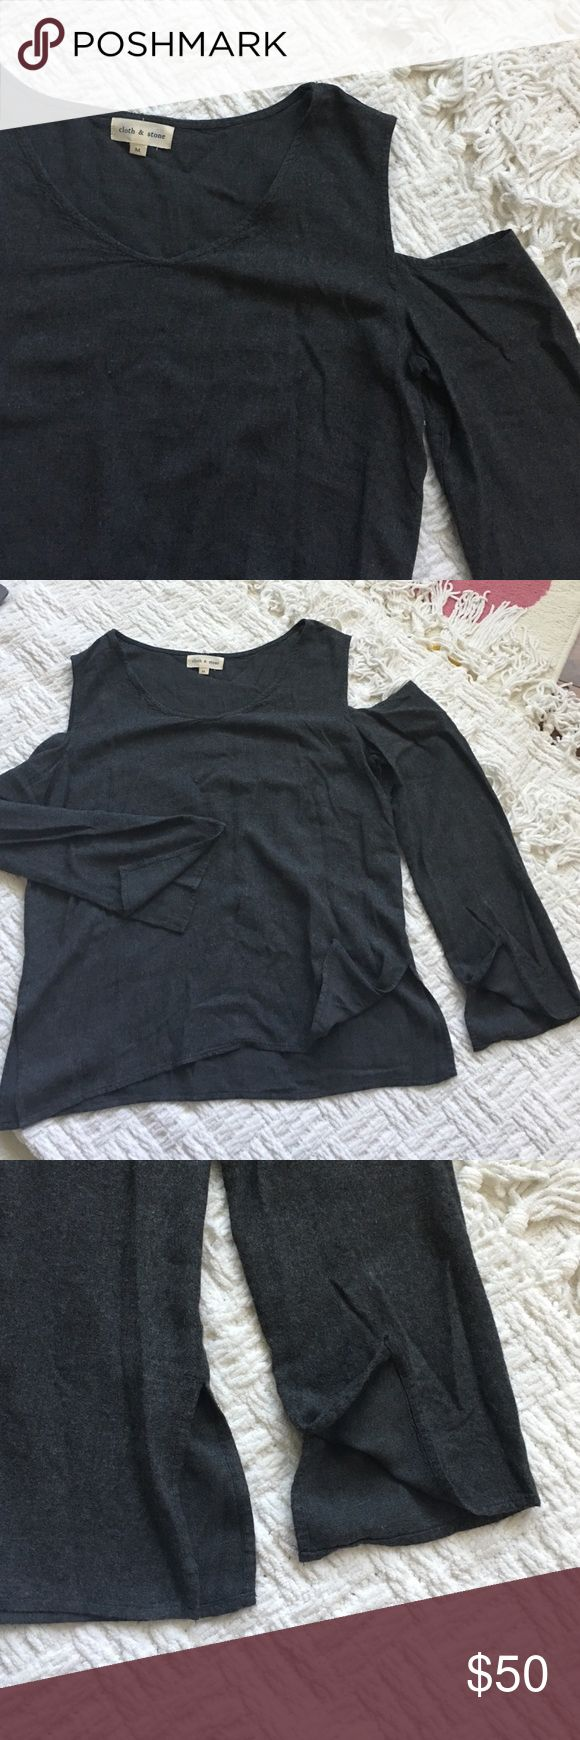 Cloth and Stone Gray Cold Shoulder Top Great long sleeve top with small slits on sleeves and on the shirt. New but has store wear. Offers welcome through offer tab. No trades. Means to be a relaxed fit. 10113171151 Anthropologie Tops Tees - Long Sleeve